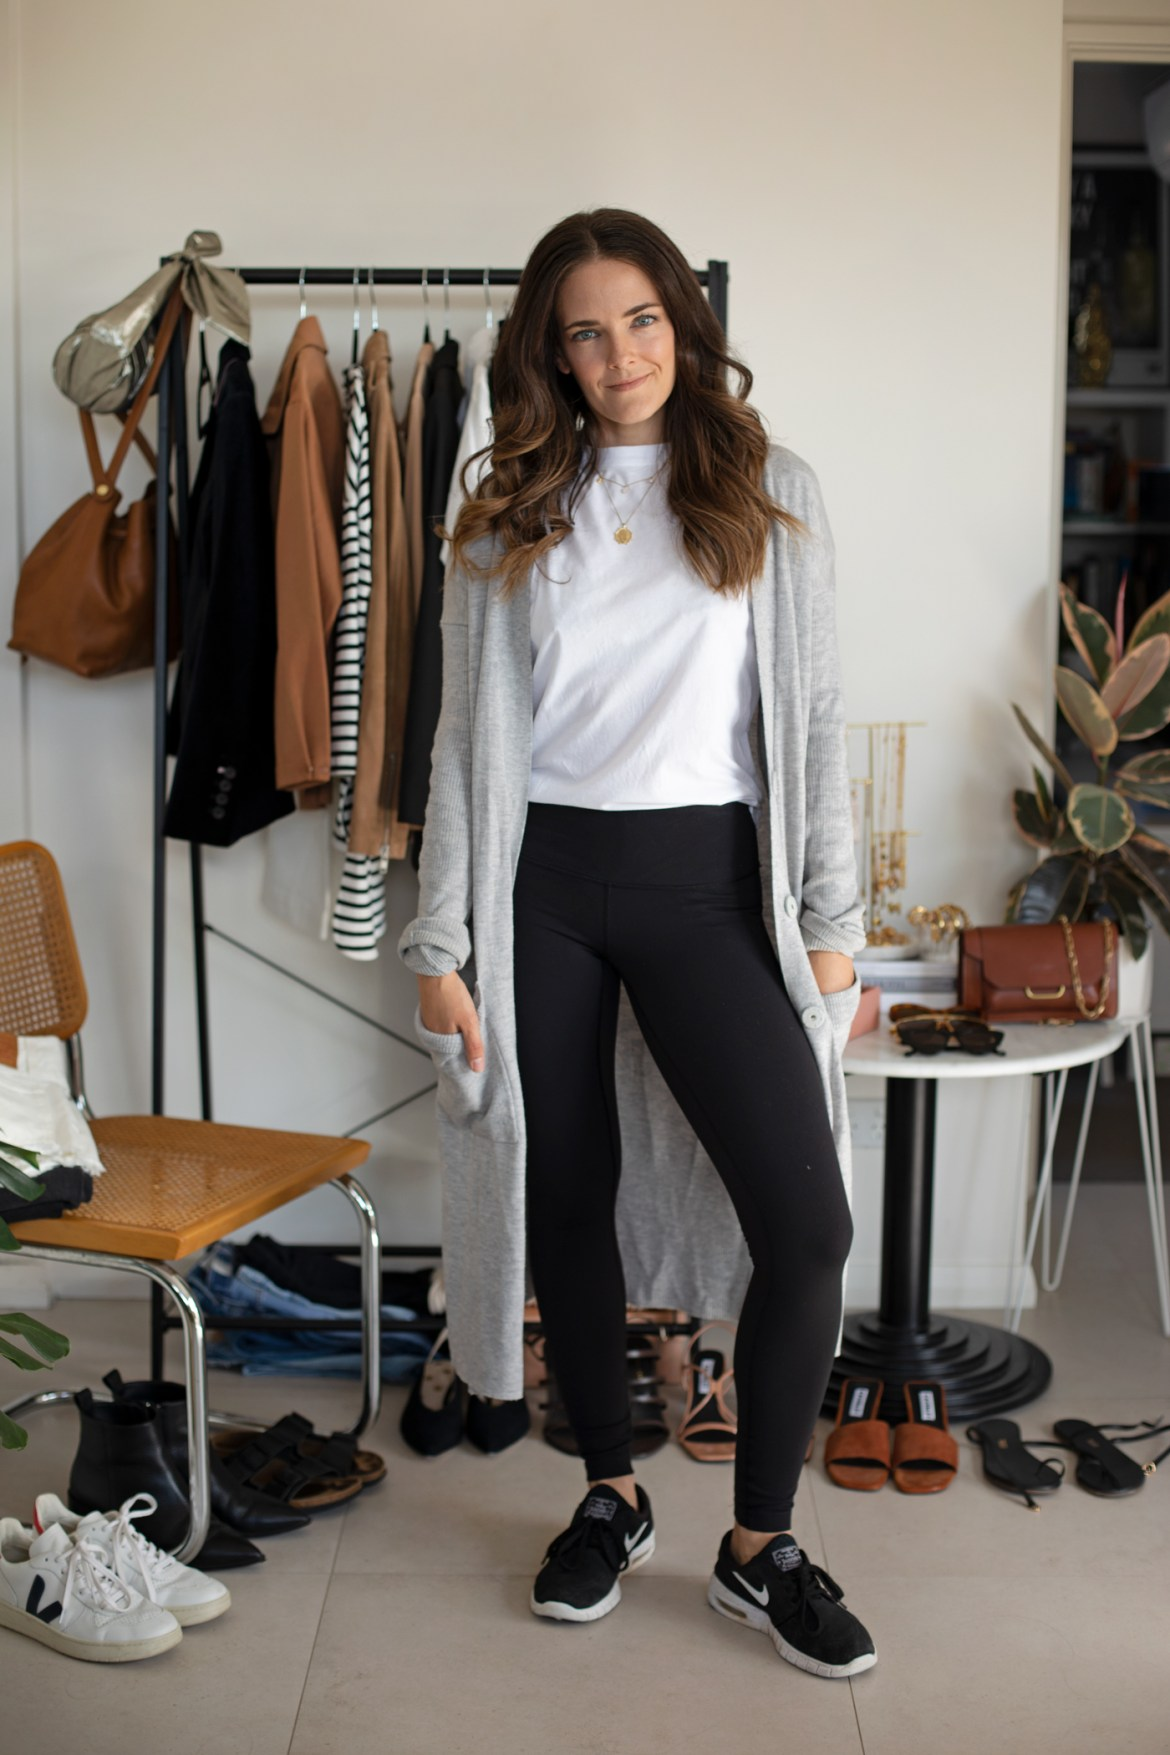 Lululemon leggings outfit from the 7 ways 7 days at home outfit ideas for a week at home in ISO styling video on IGTV @inspiringwit